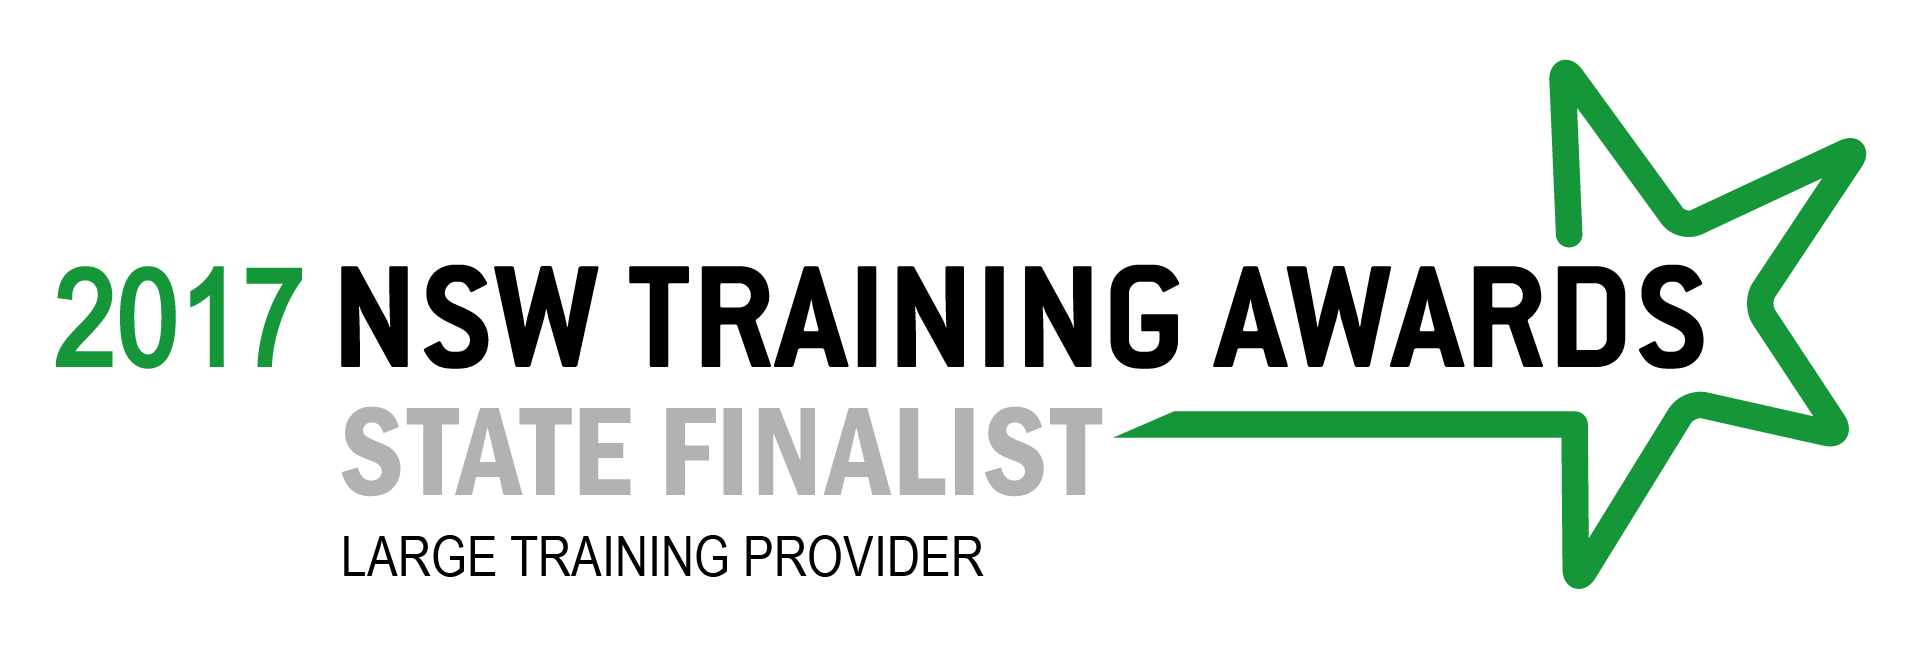 2017 NSW Training Awards Finalist LARGE training provider white hrztl